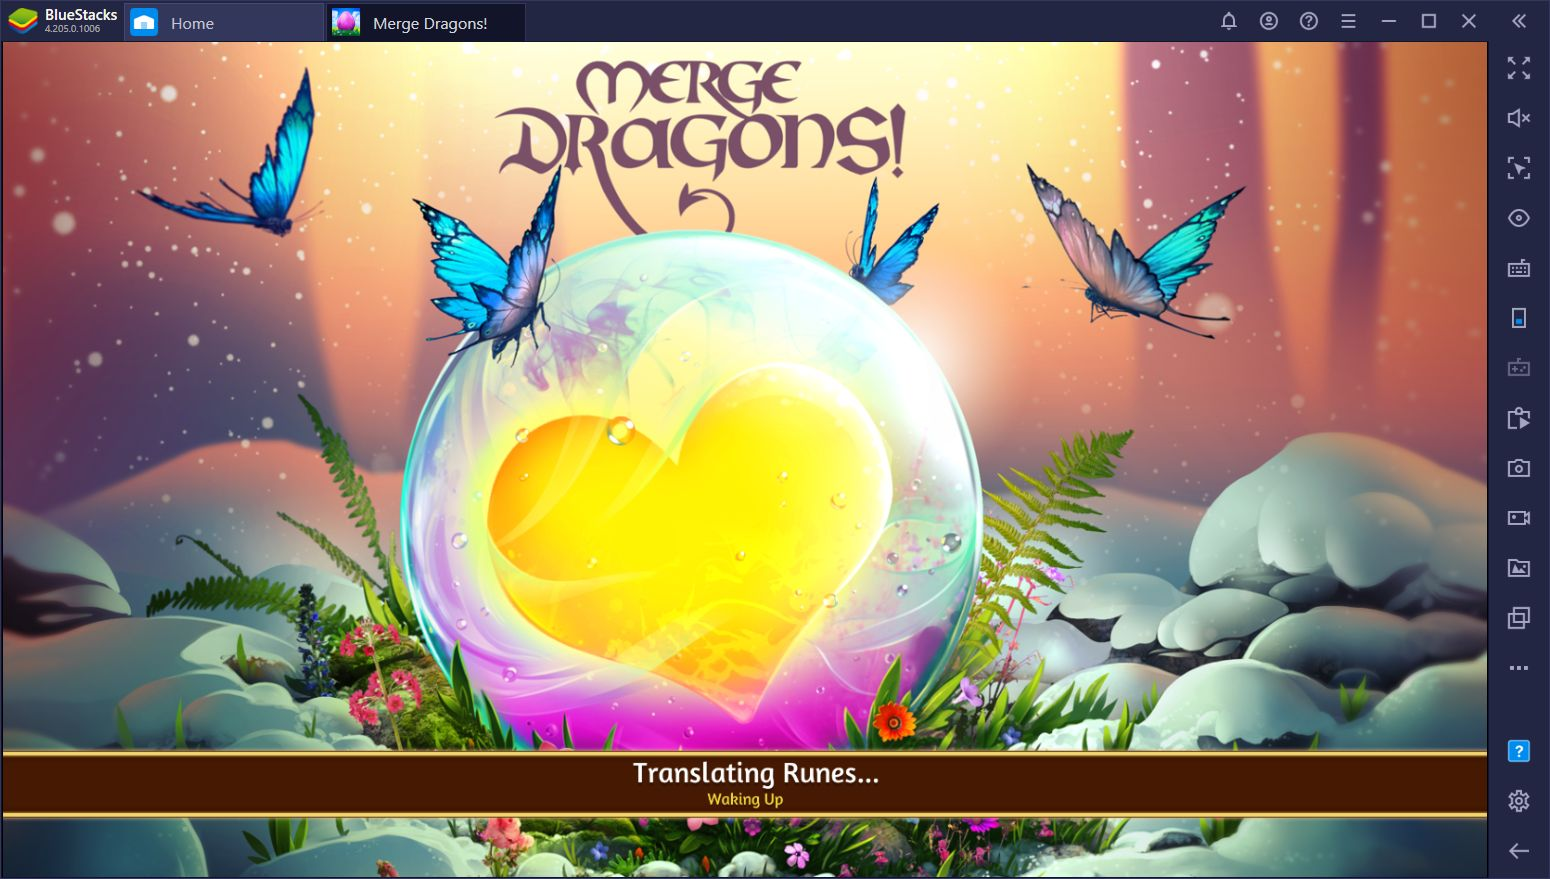 The Best Tips and Guides for Merge Dragons! on PC